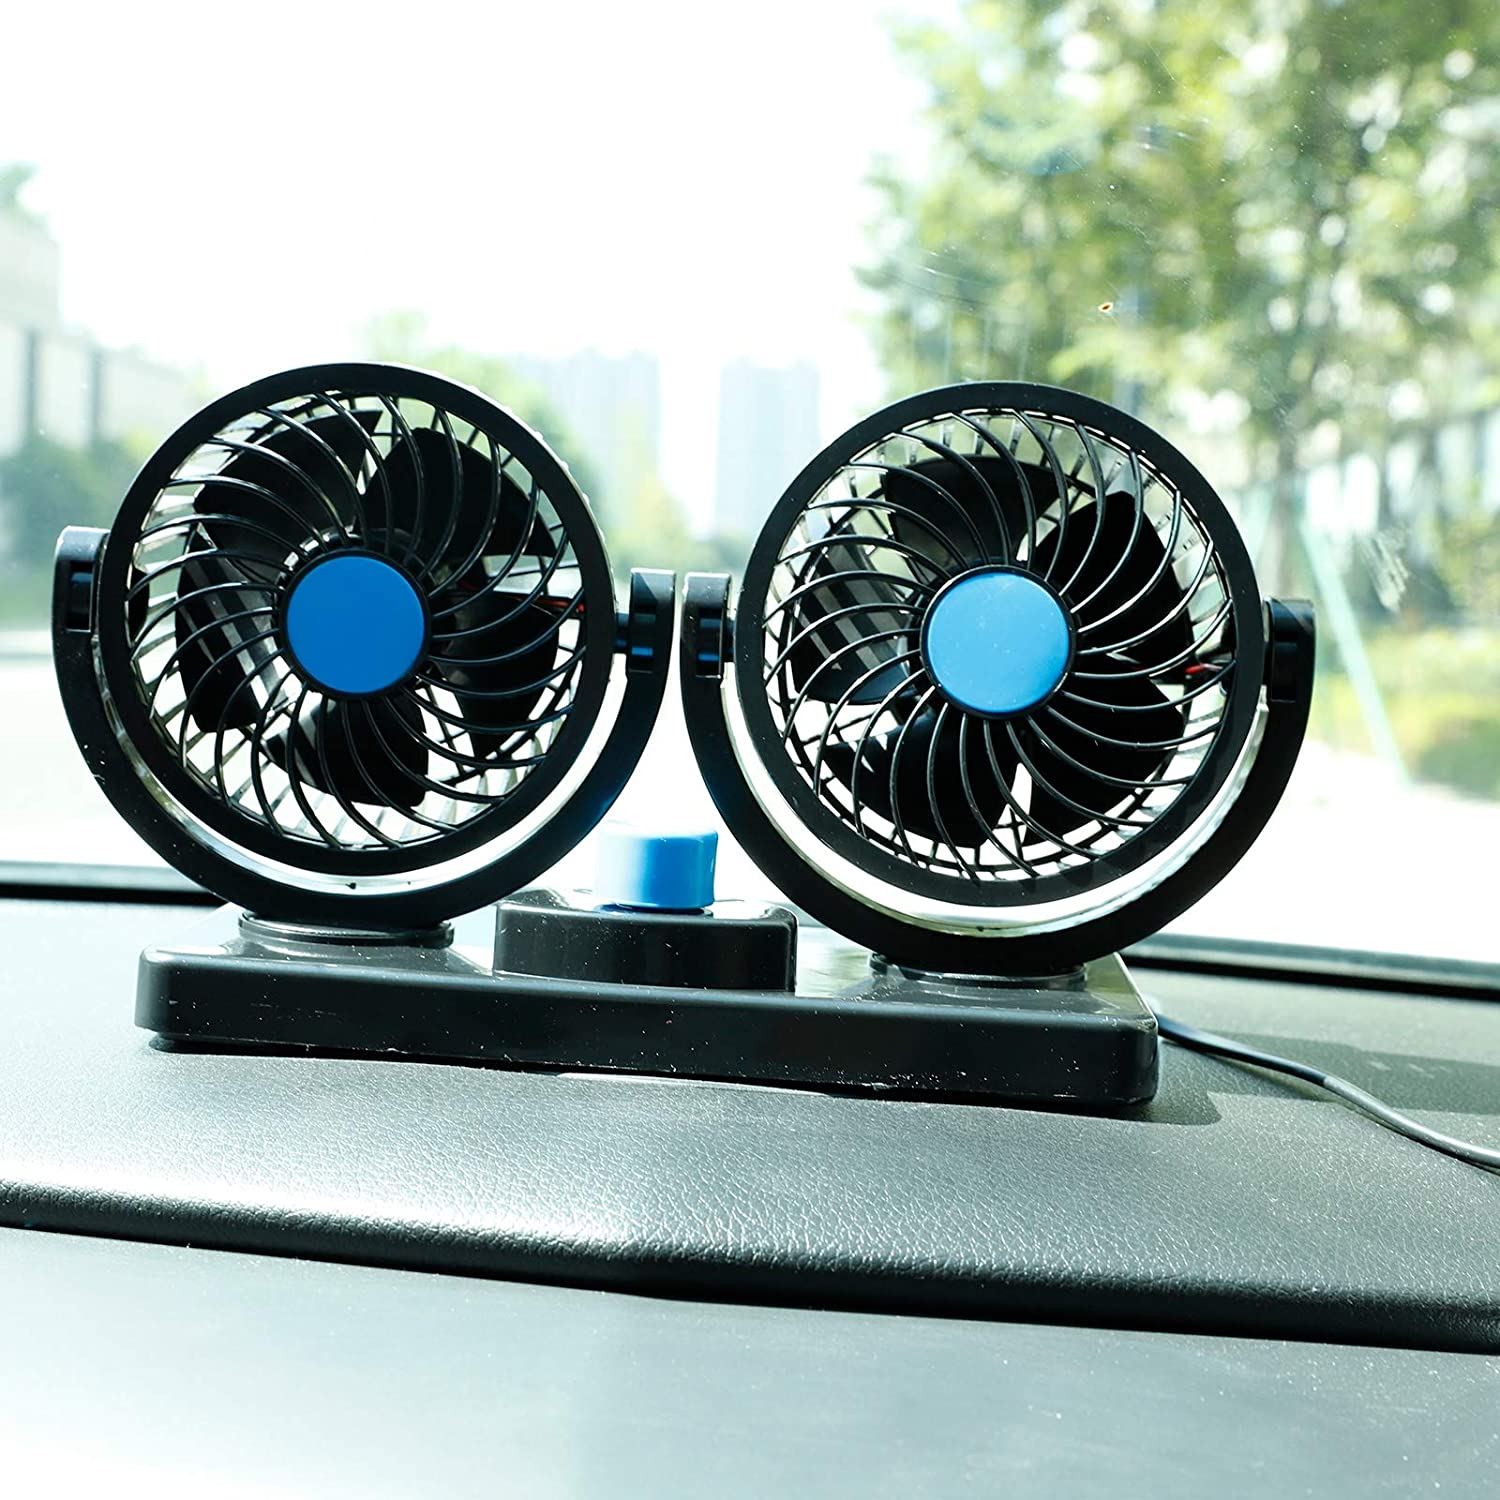 SUPERFASTRACING 12V 4.5Car Cooling Fan Automobile Vehicle Clip Fan Powerful Quiet Ventilation Electric Car Fans with Adjustable Clip for Sedan SUV RV